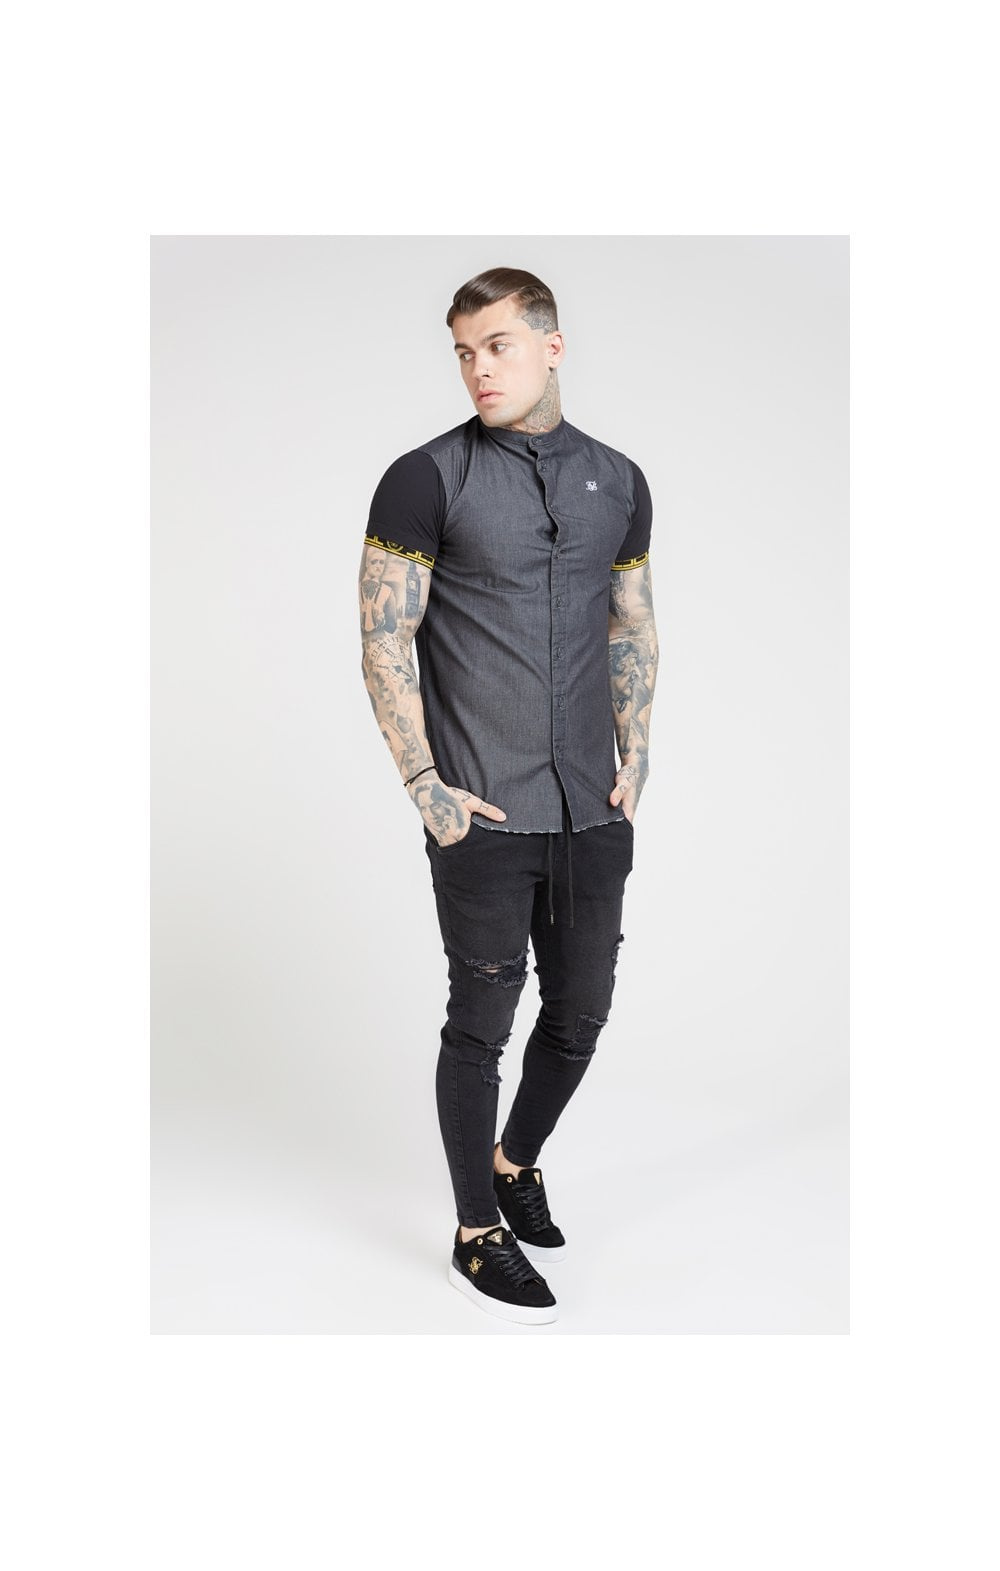 SikSilk S/S Denim Shirt – Black (2)